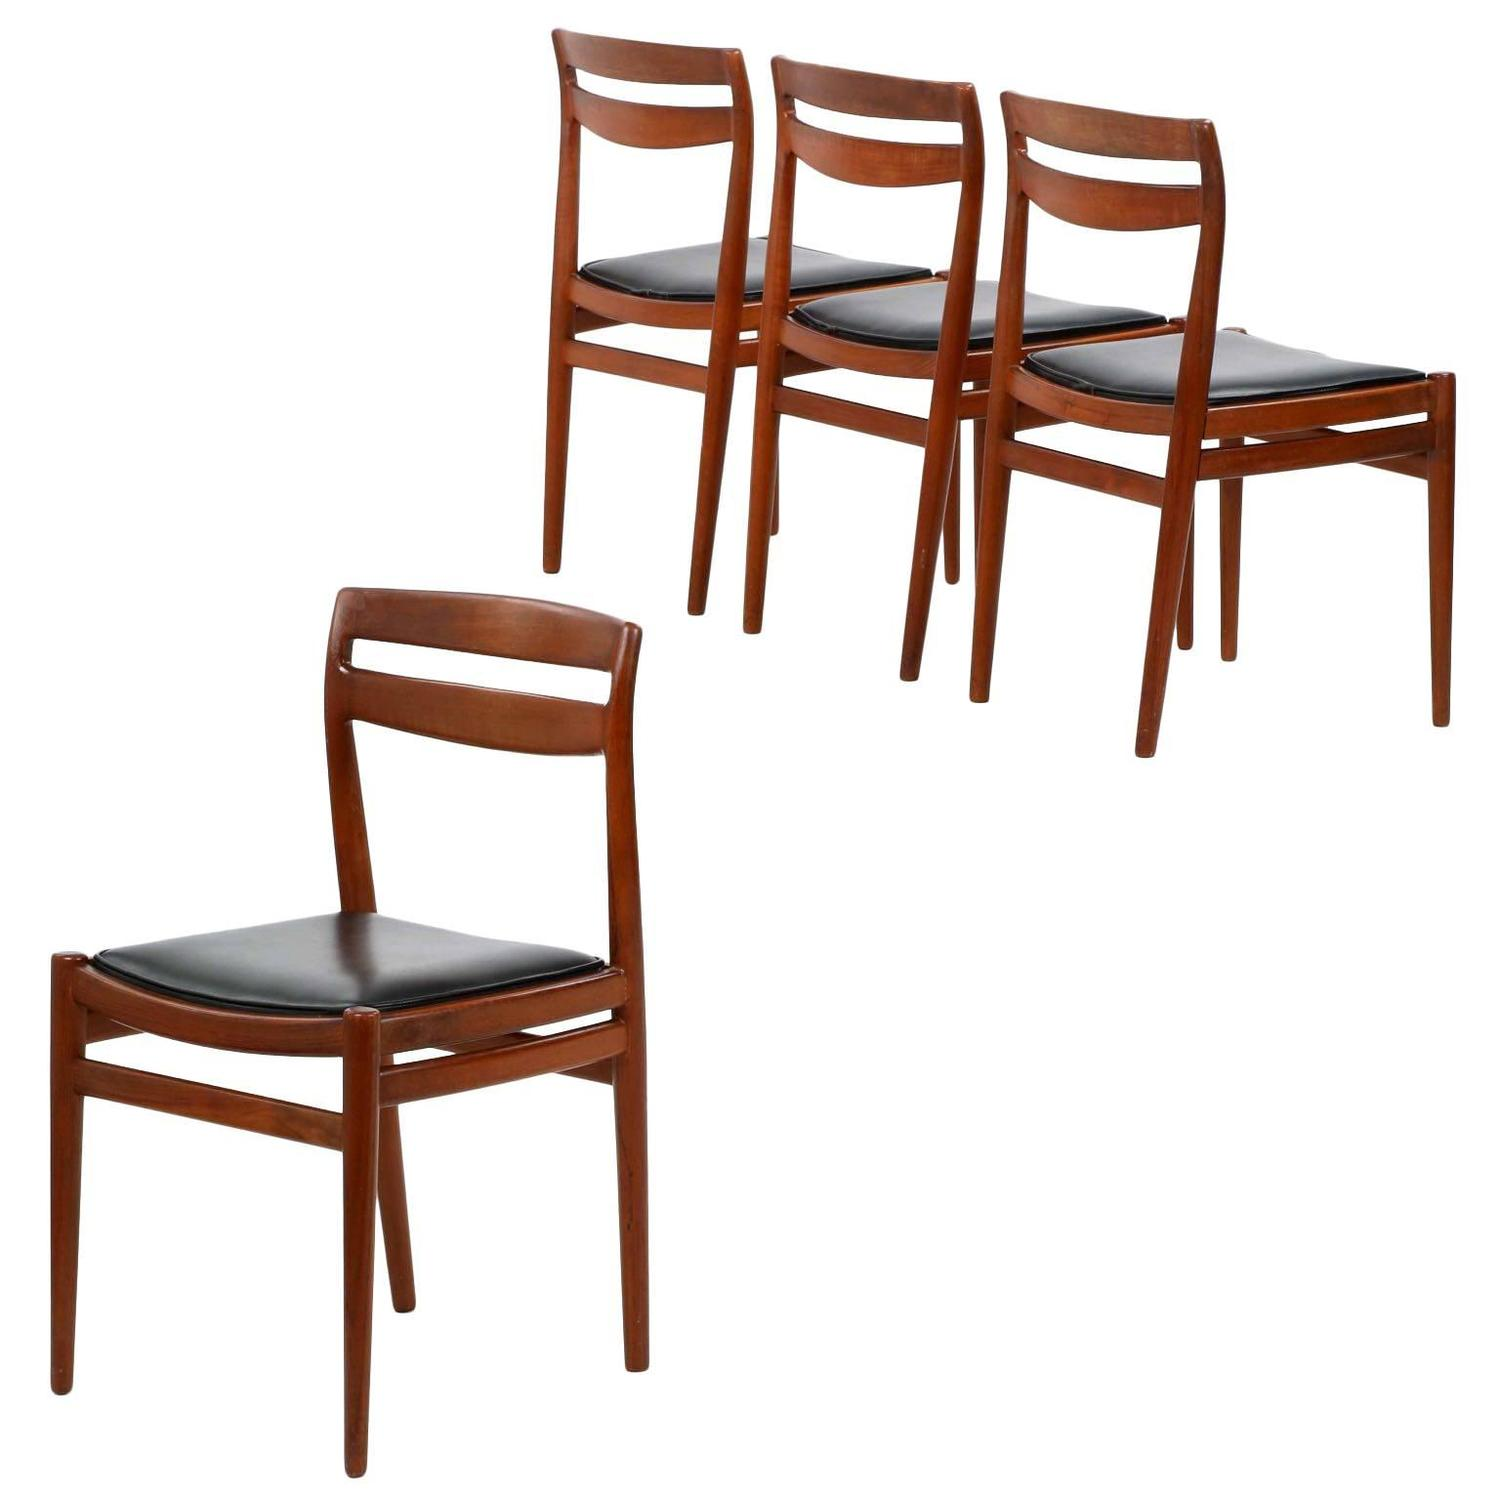 Four Danish Mid Century Modern Teakwood Side Chairs Retailed By Leo